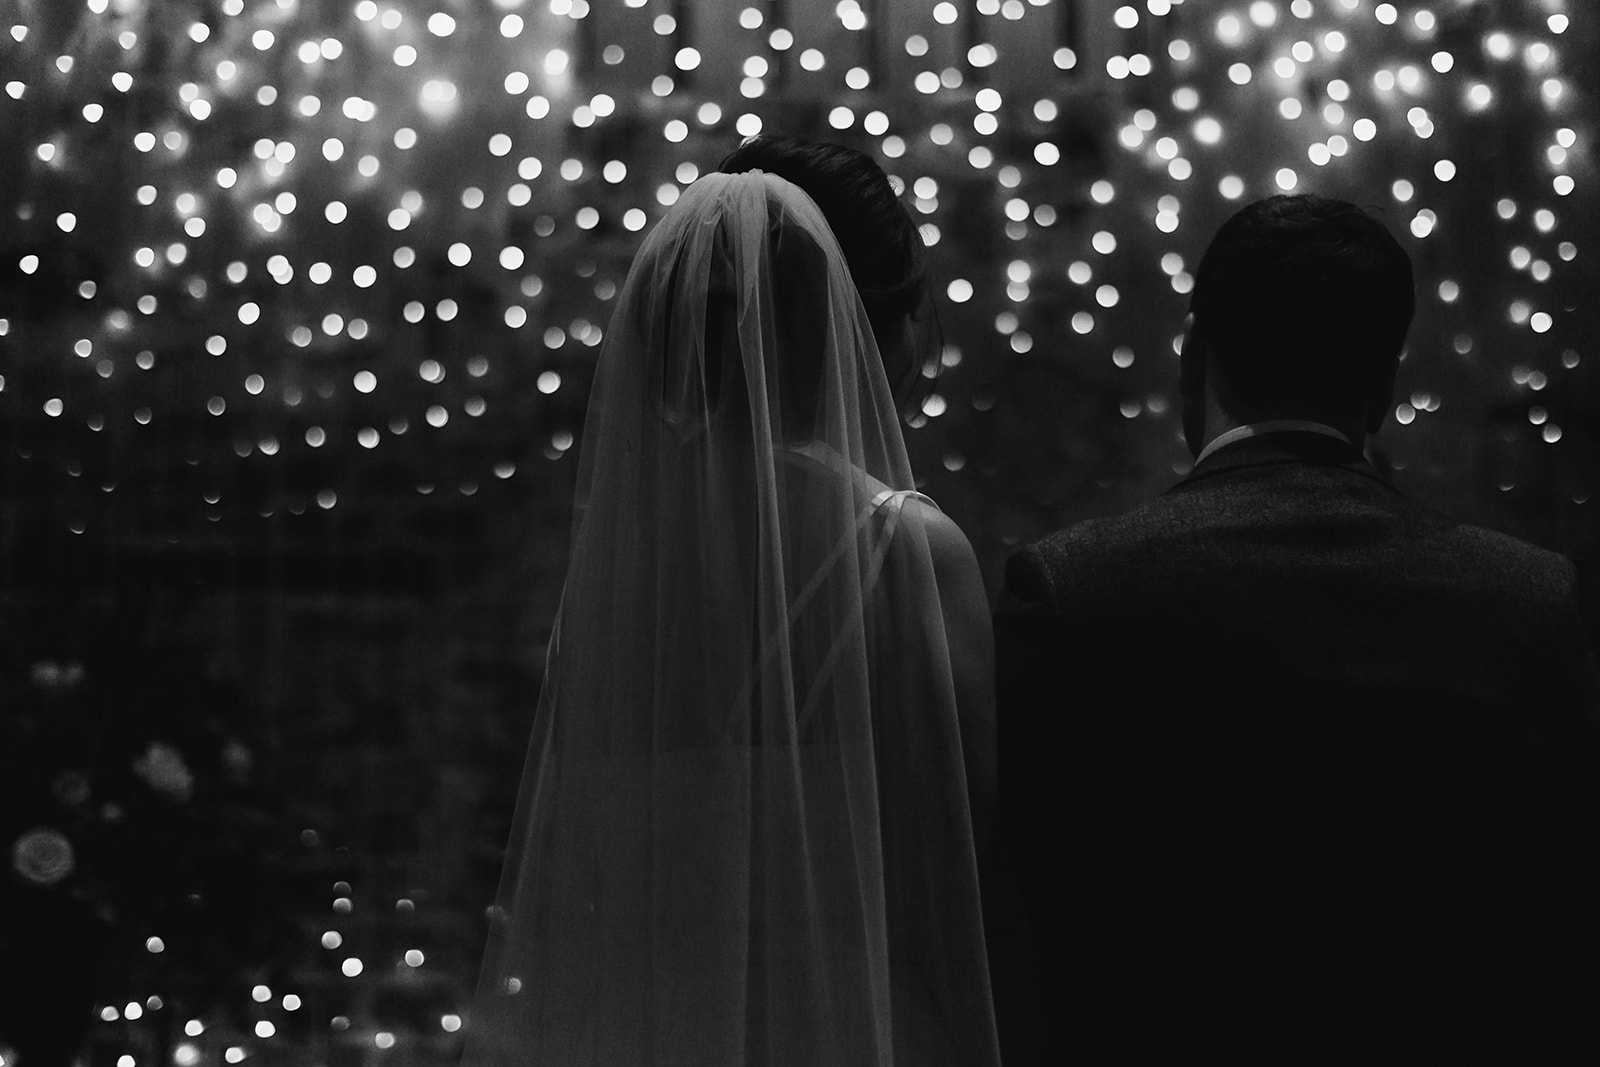 Laura and Mark exchange vows with stars in their eyes - photo by Luke Bell.jpg